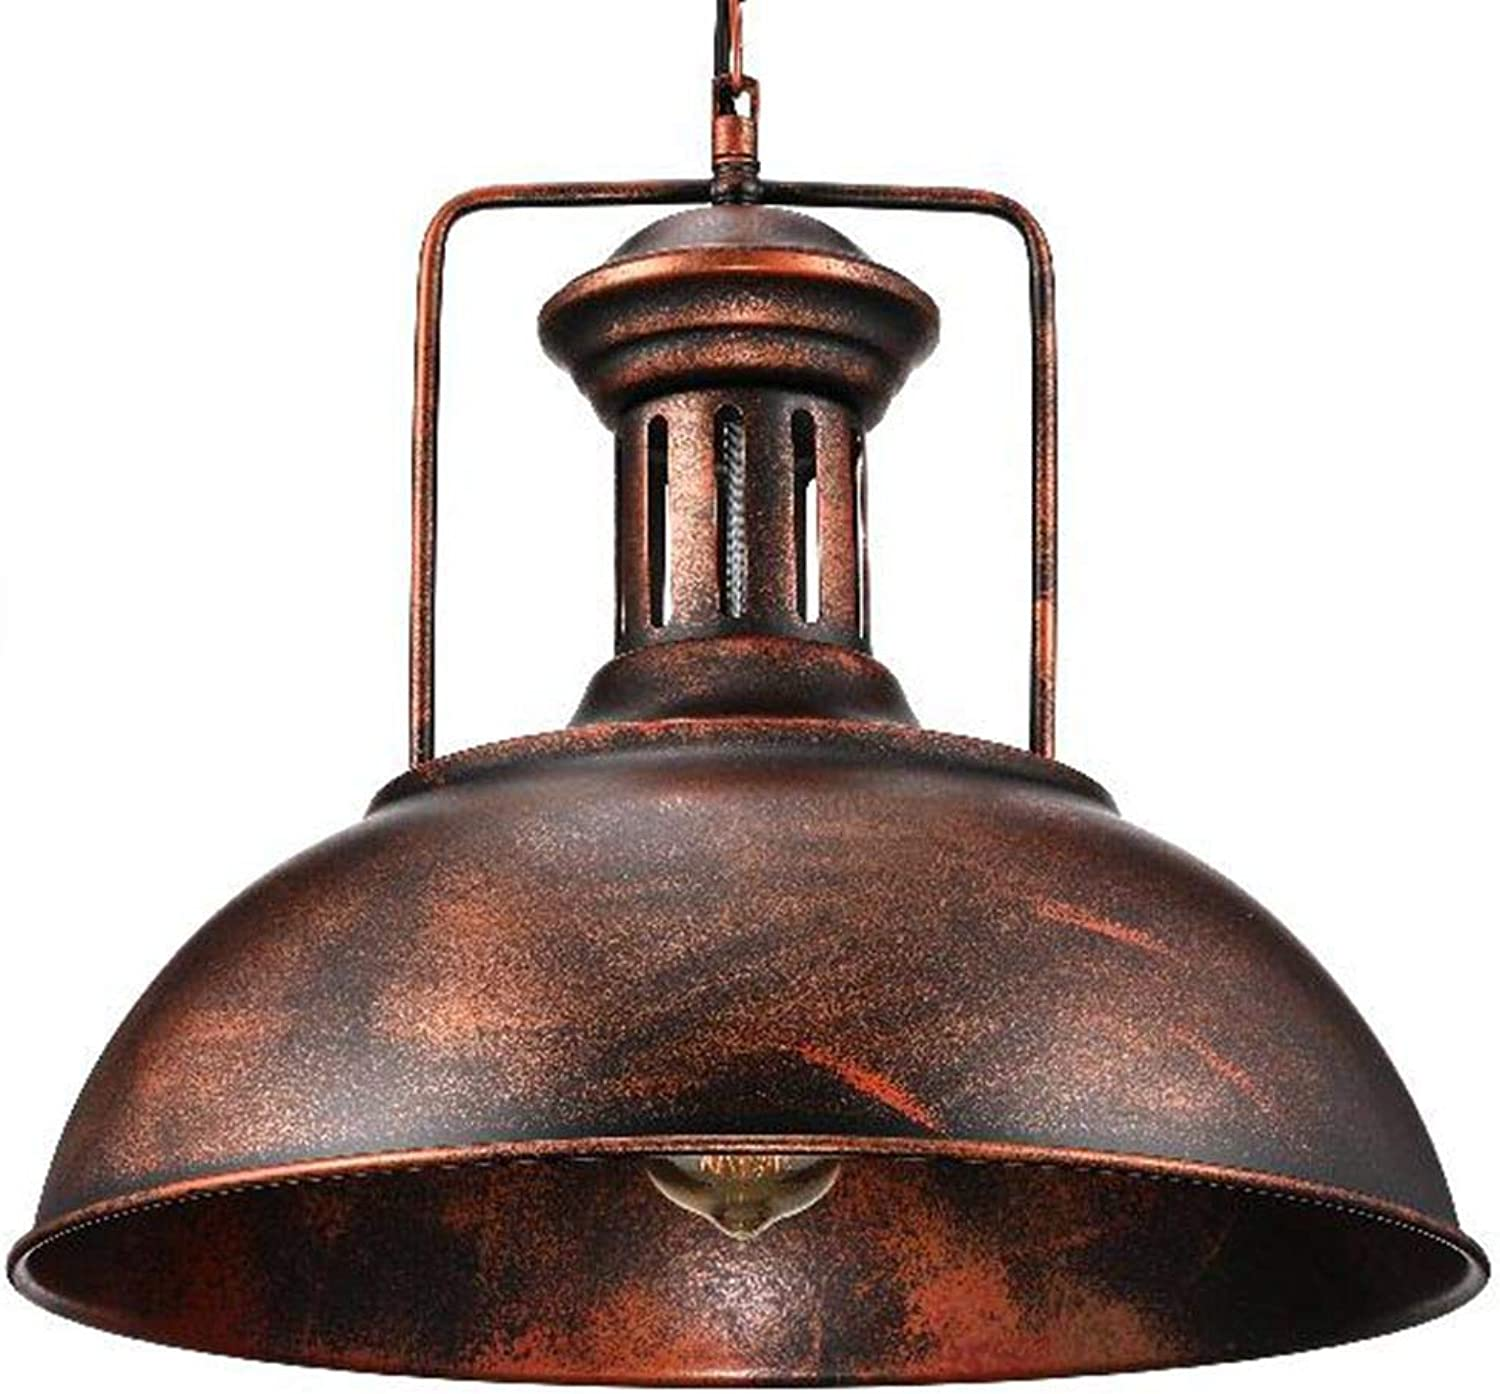 Industrial Nautical Barn Pendant Light - LITFAD 16  Single Pendant Lamp with Rustic Dome Bowl Shape Mounted Fixture Ceiling Light Chandelier in Copper,UL Listed